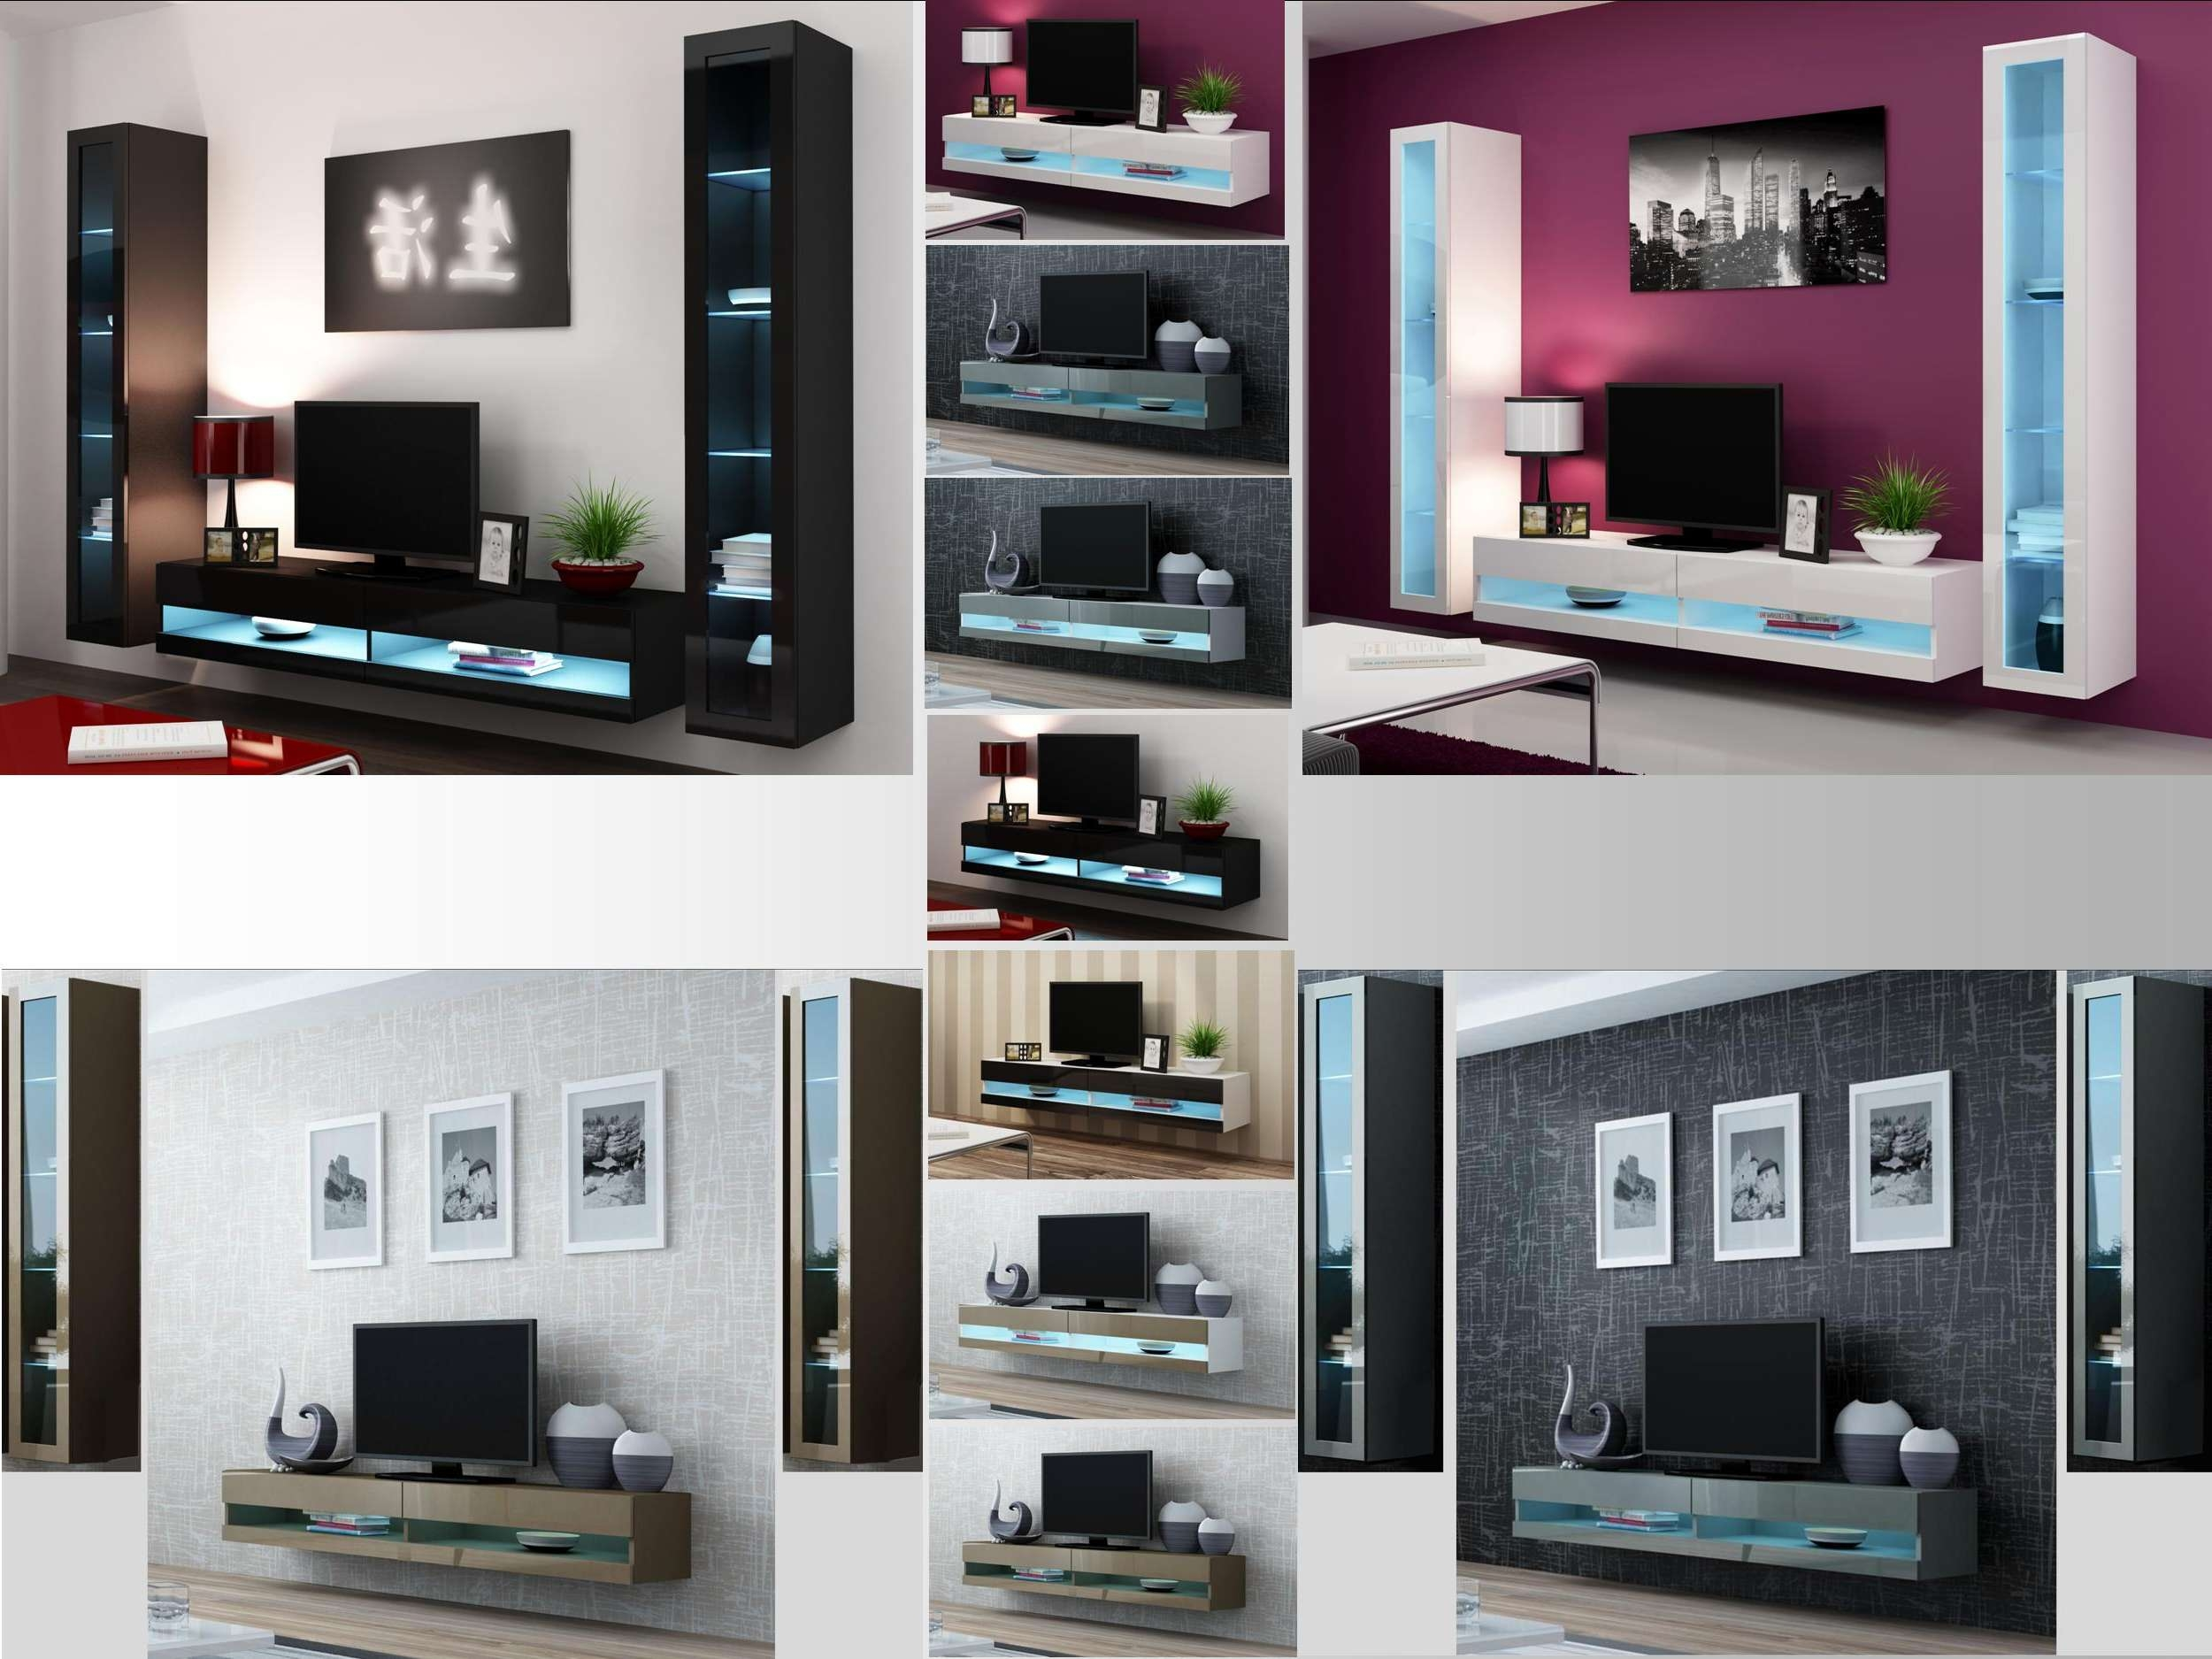 High Gloss Living Room Set With Led Lights, Tv Stand, Wall Mounted Pertaining To Wall Display Units And Tv Cabinets (View 13 of 20)